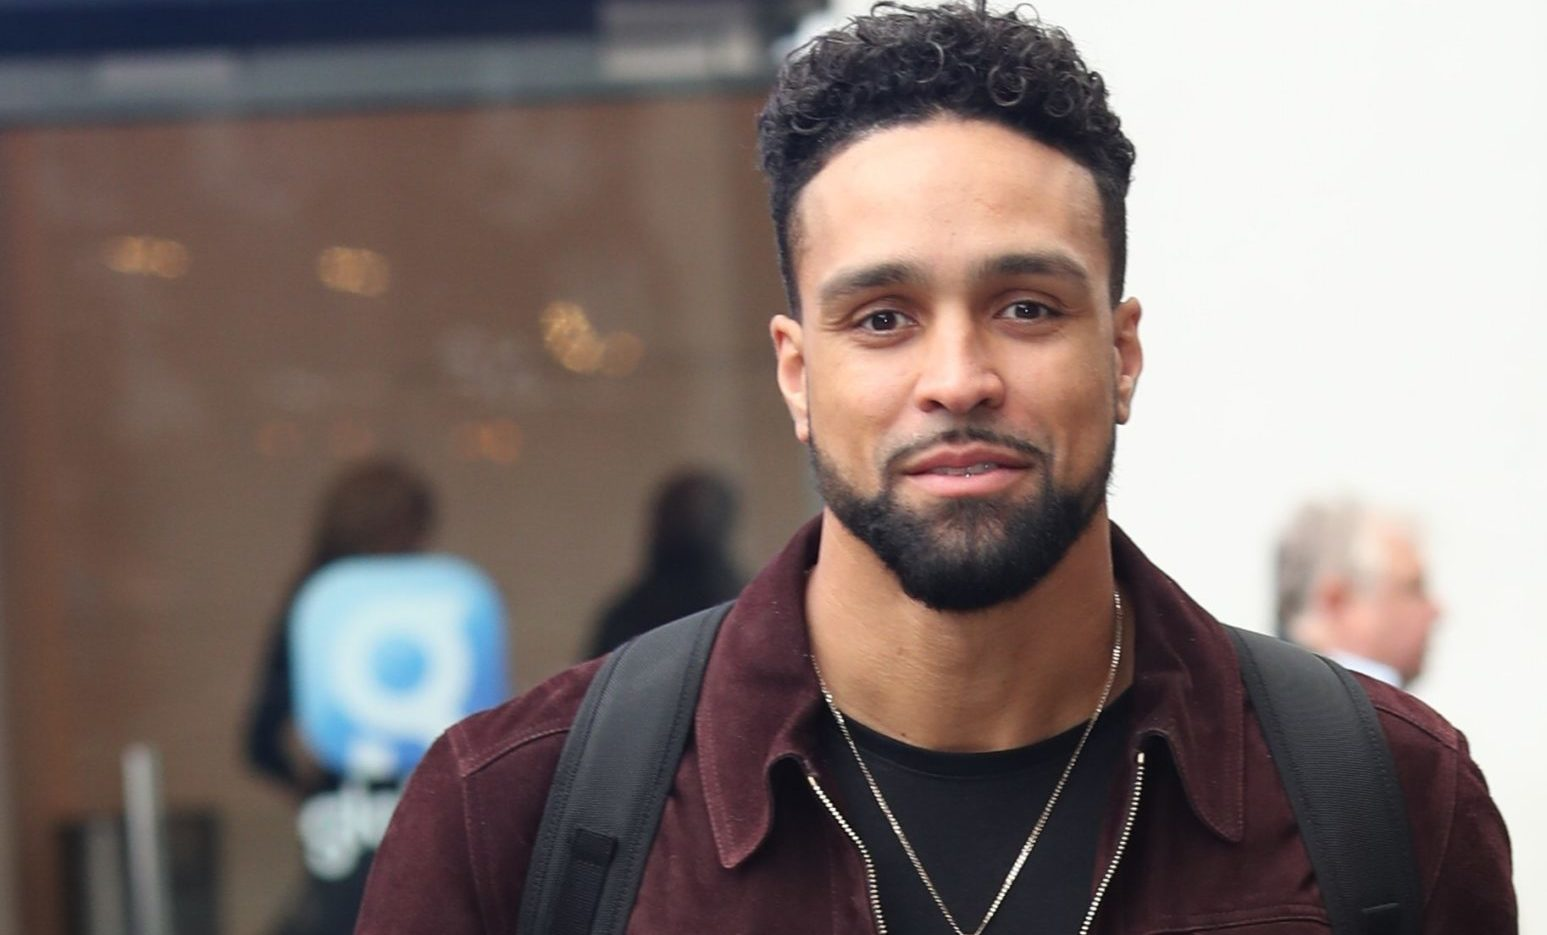 Ashley Banjo fans divided as he reveals new blonde hair in '90s-style transformation